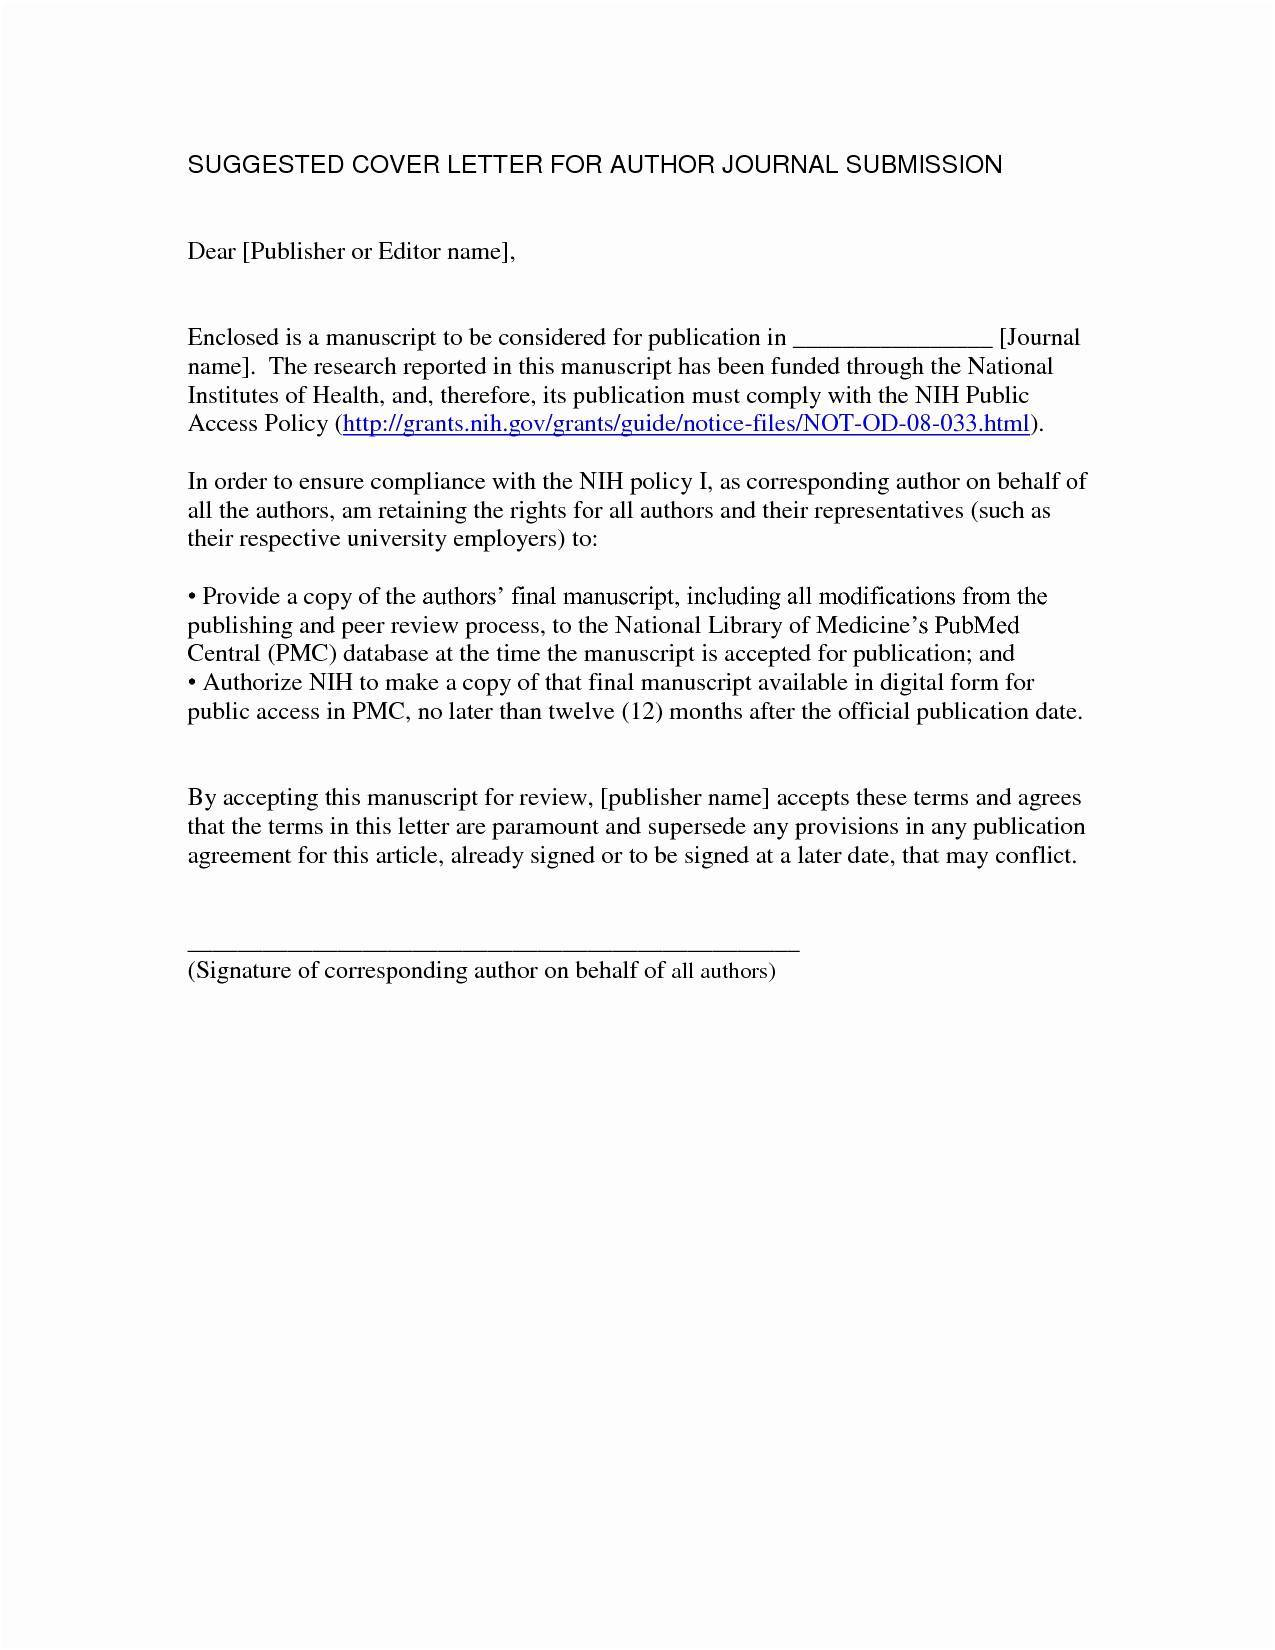 Indemnity Agreement Template Canada